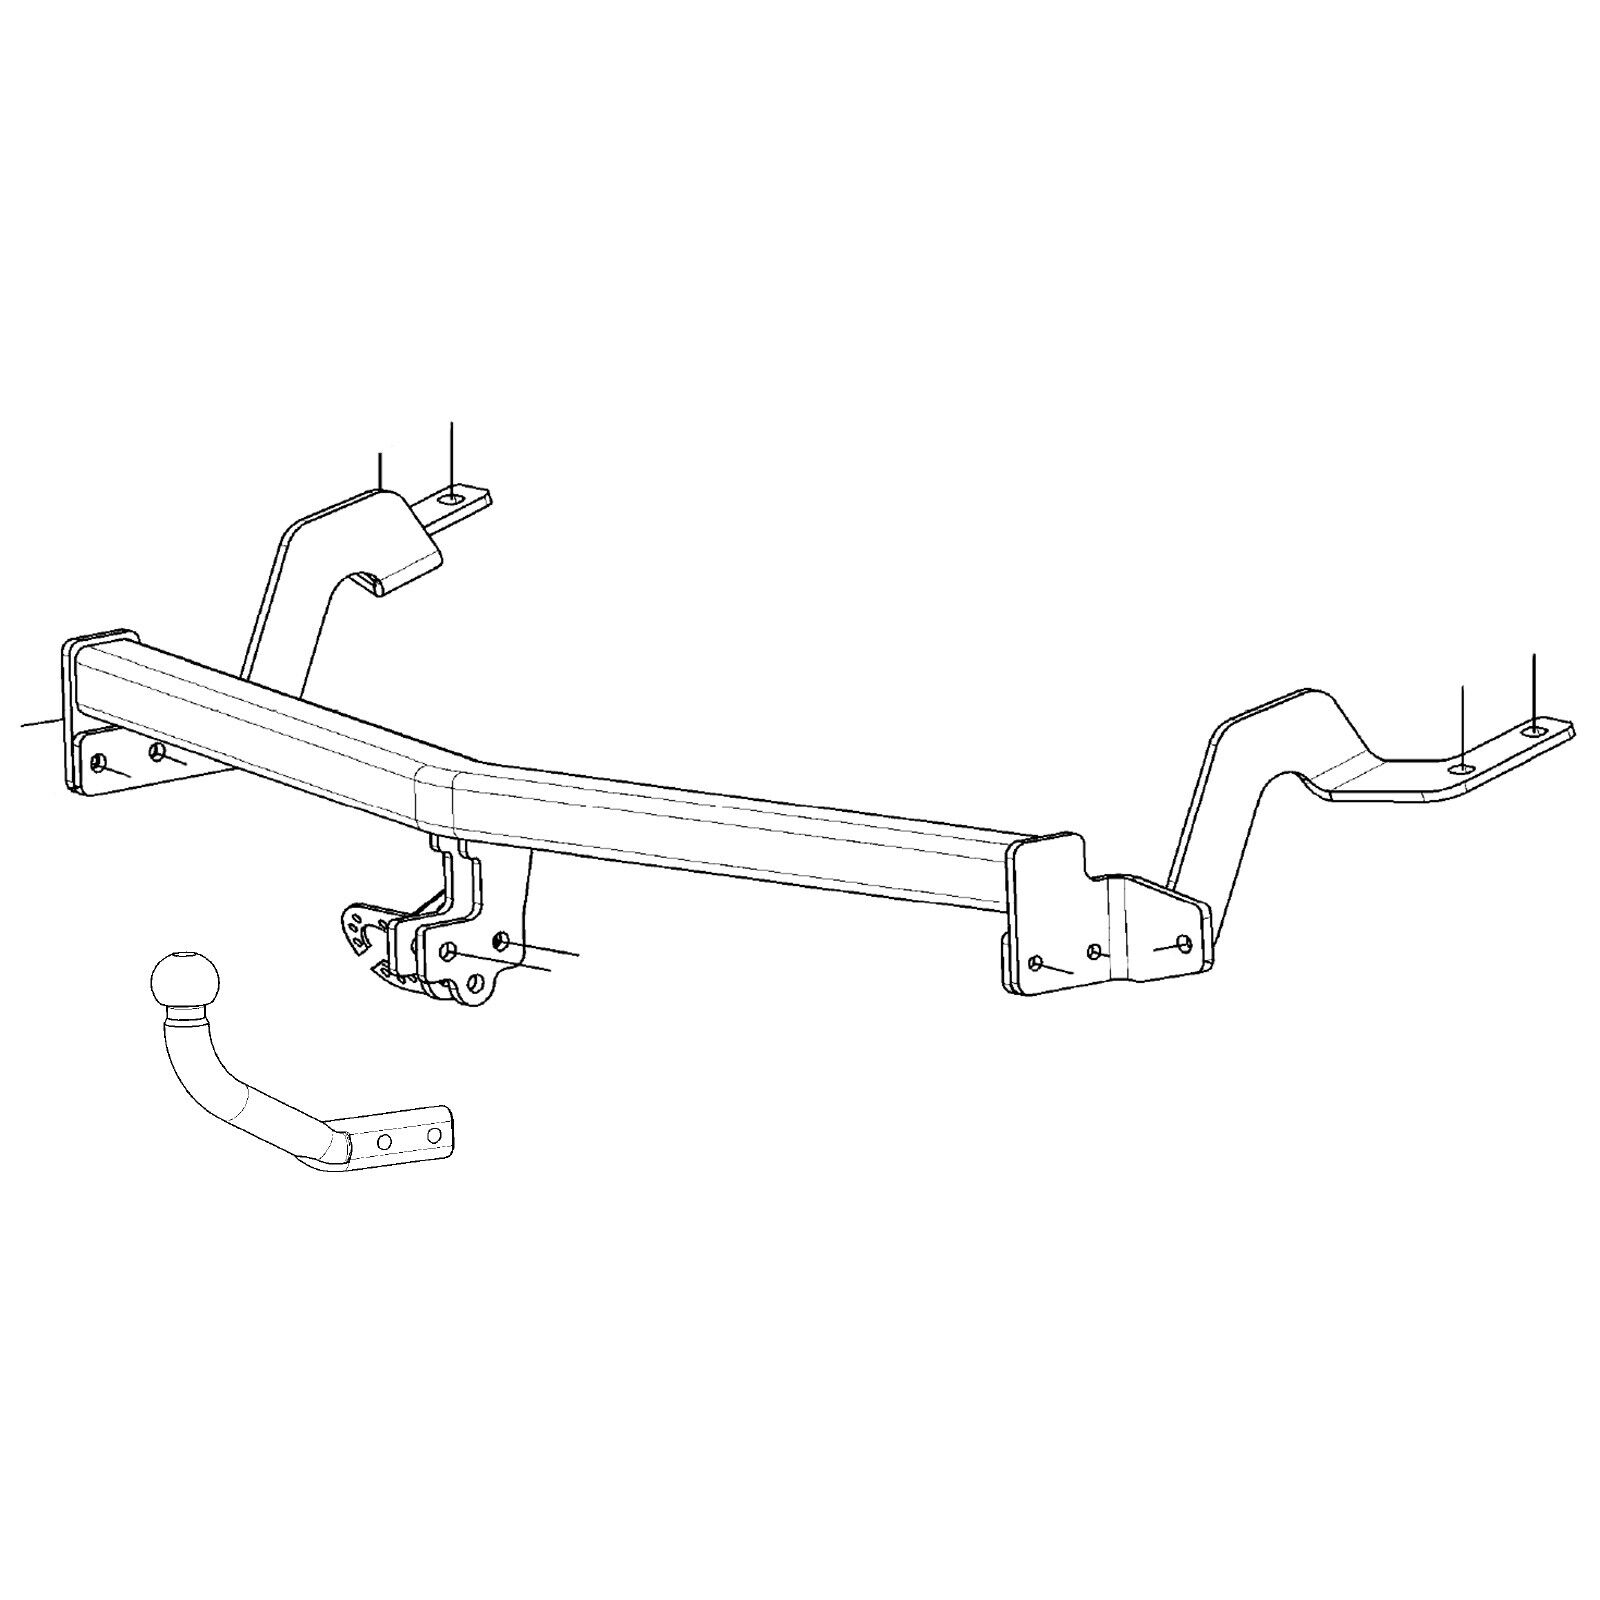 Swan Neck Tow Bar Towbar for Citroen Nemo Van 2008 Onwards